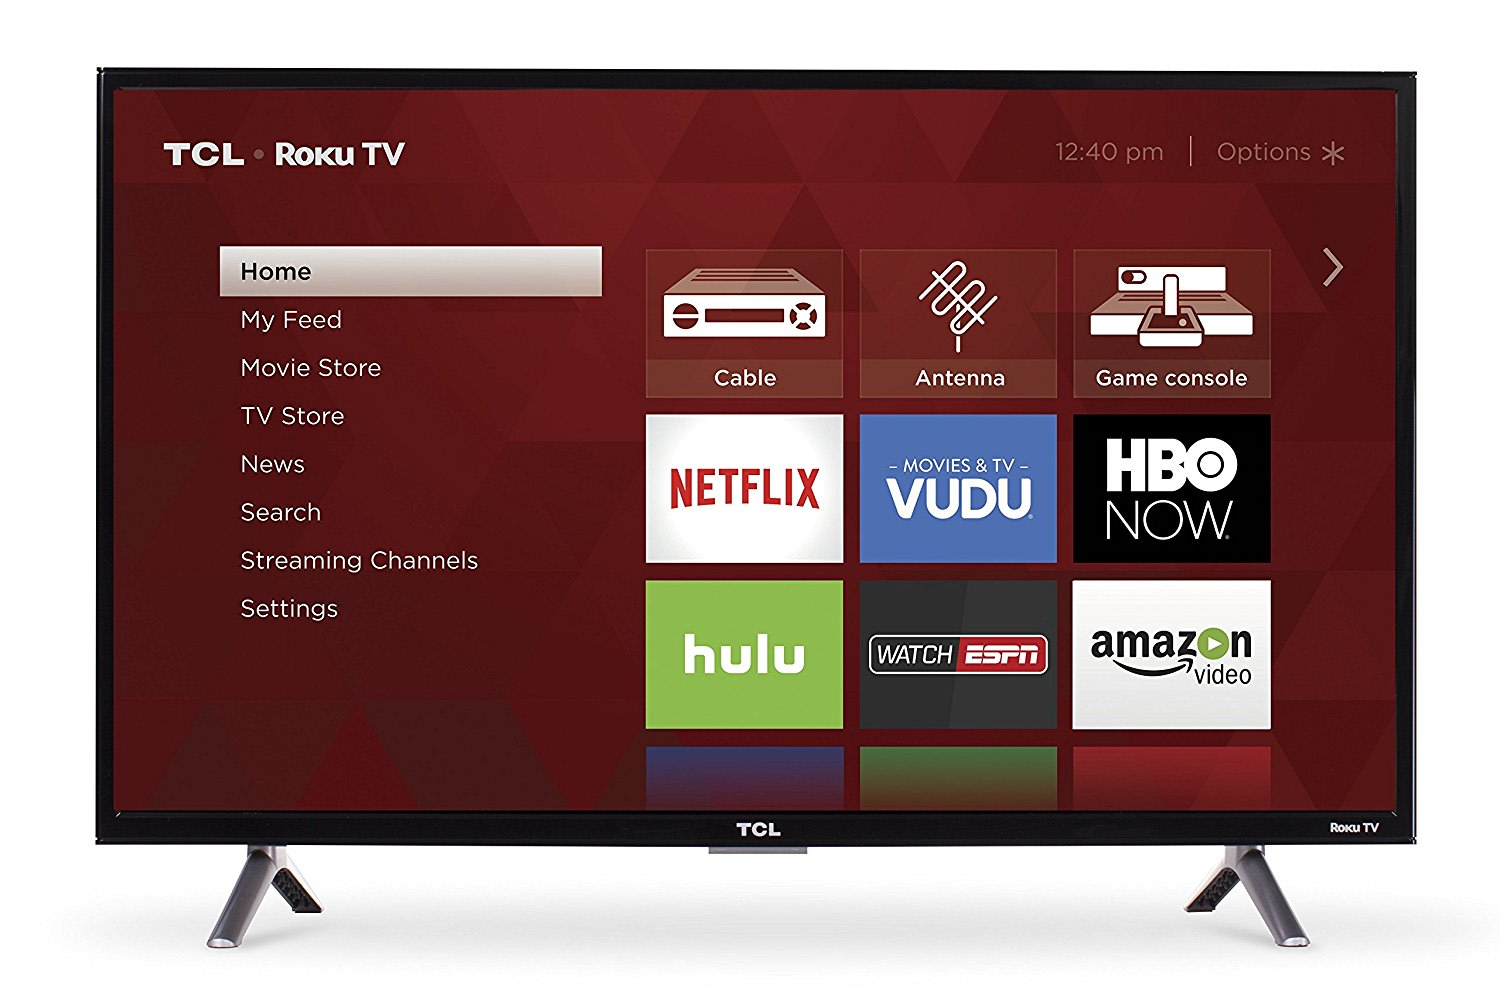 An image of TCL 32S305 32-Inch HD LED Smart TV